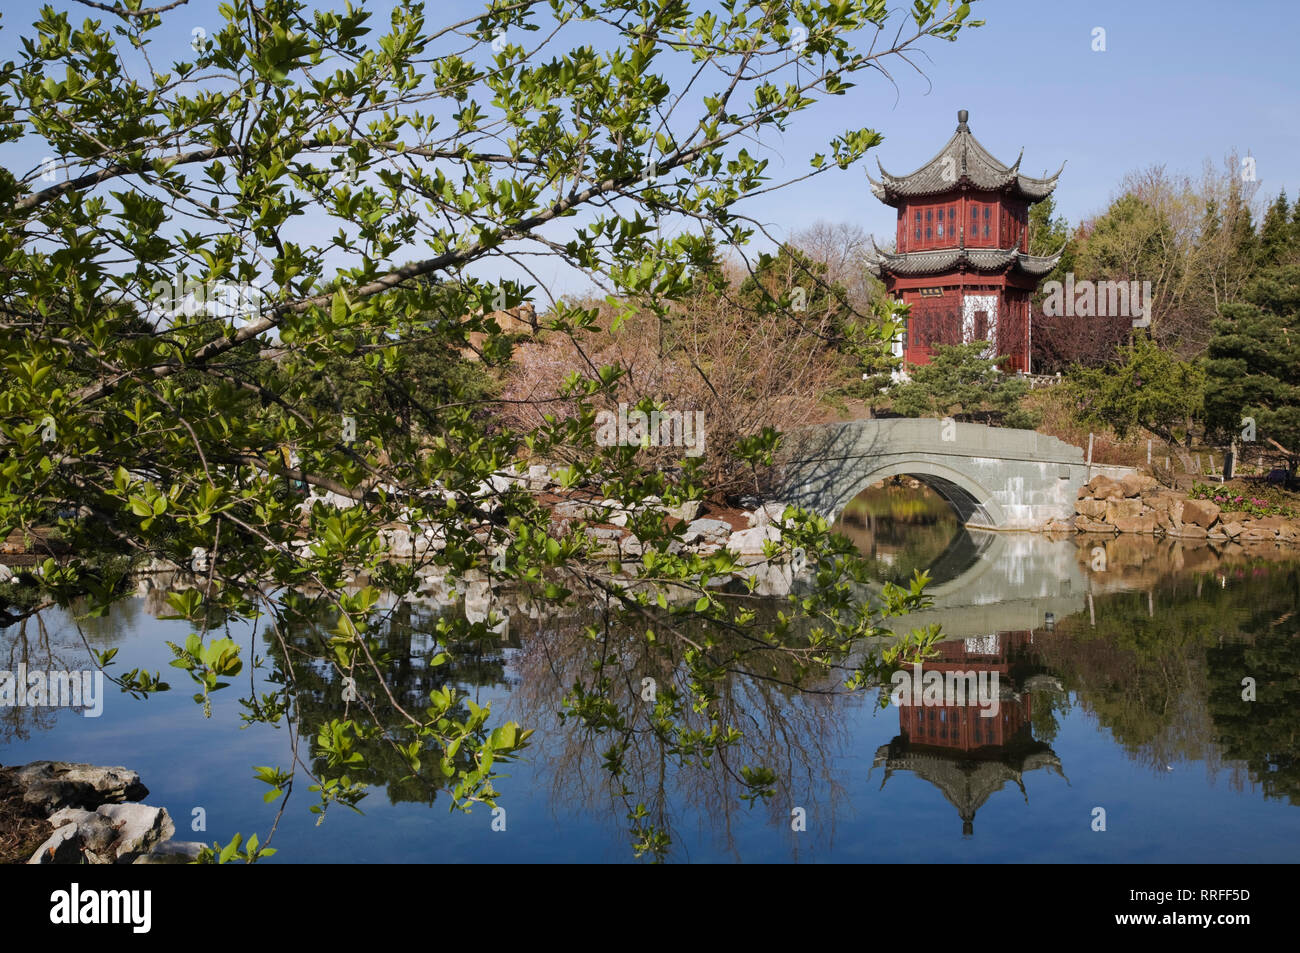 Stone footbridge and the Tower of Condensing Clouds pavilion and Dream lake in Chinese Garden in spring Montreal Botanical Garden, Quebec, Canada - Stock Image